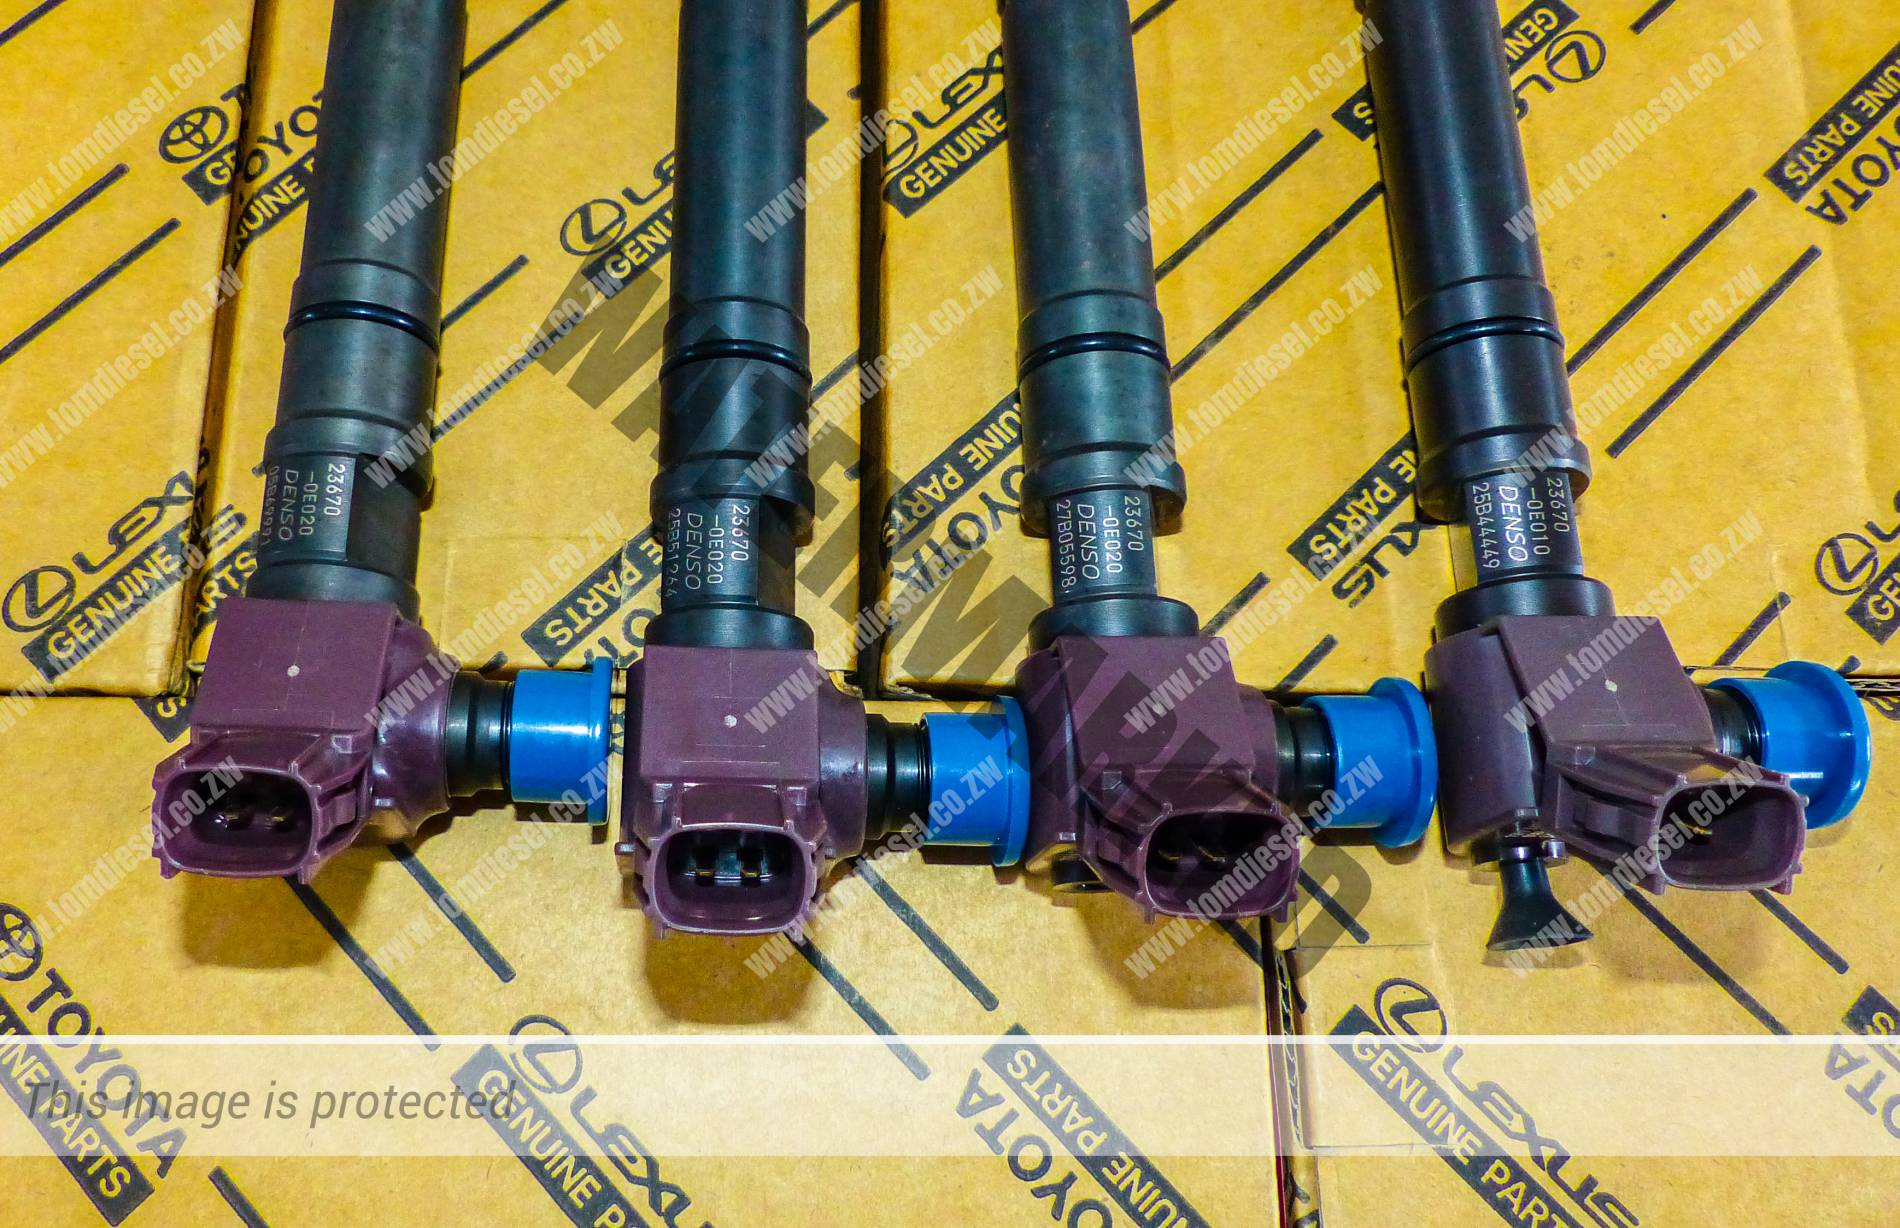 toyota gd6 2.8 injectors for sale